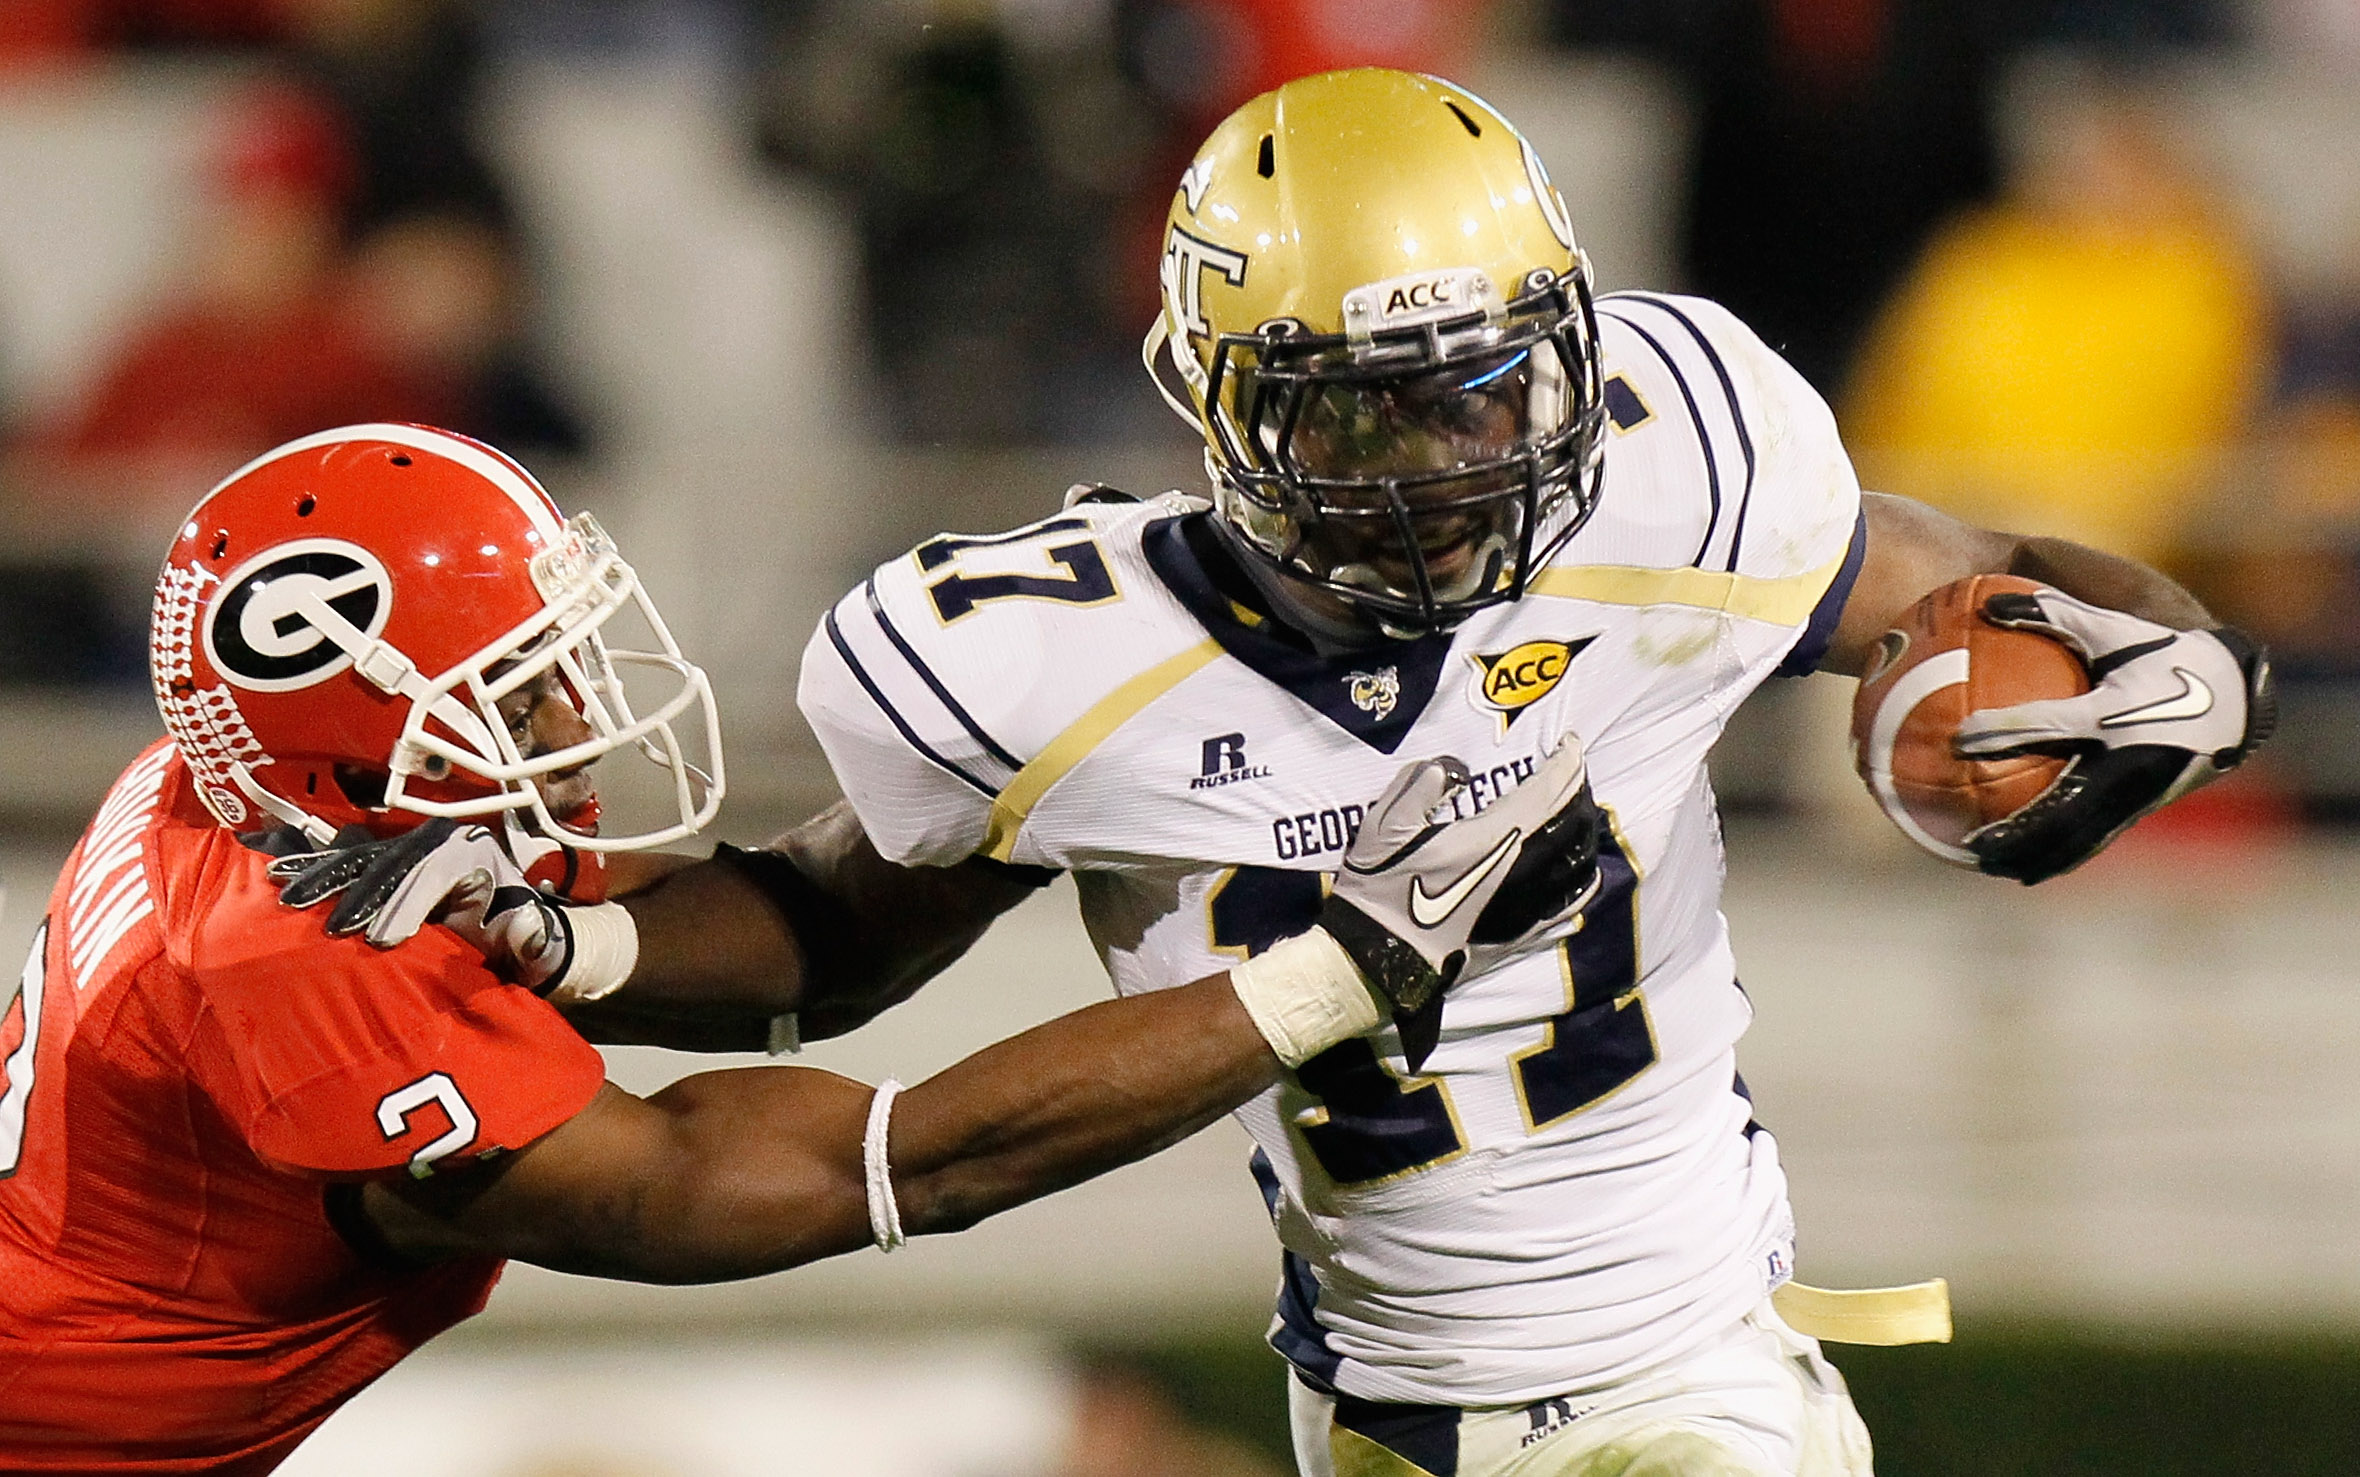 ATHENS, GA - NOVEMBER 27:  Brandon Boykin #2 of the Georgia Bulldogs tackles Orwin Smith #17 of the Georgia Tech Yellow Jackets at Sanford Stadium on November 27, 2010 in Athens, Georgia.  (Photo by Kevin C. Cox/Getty Images)